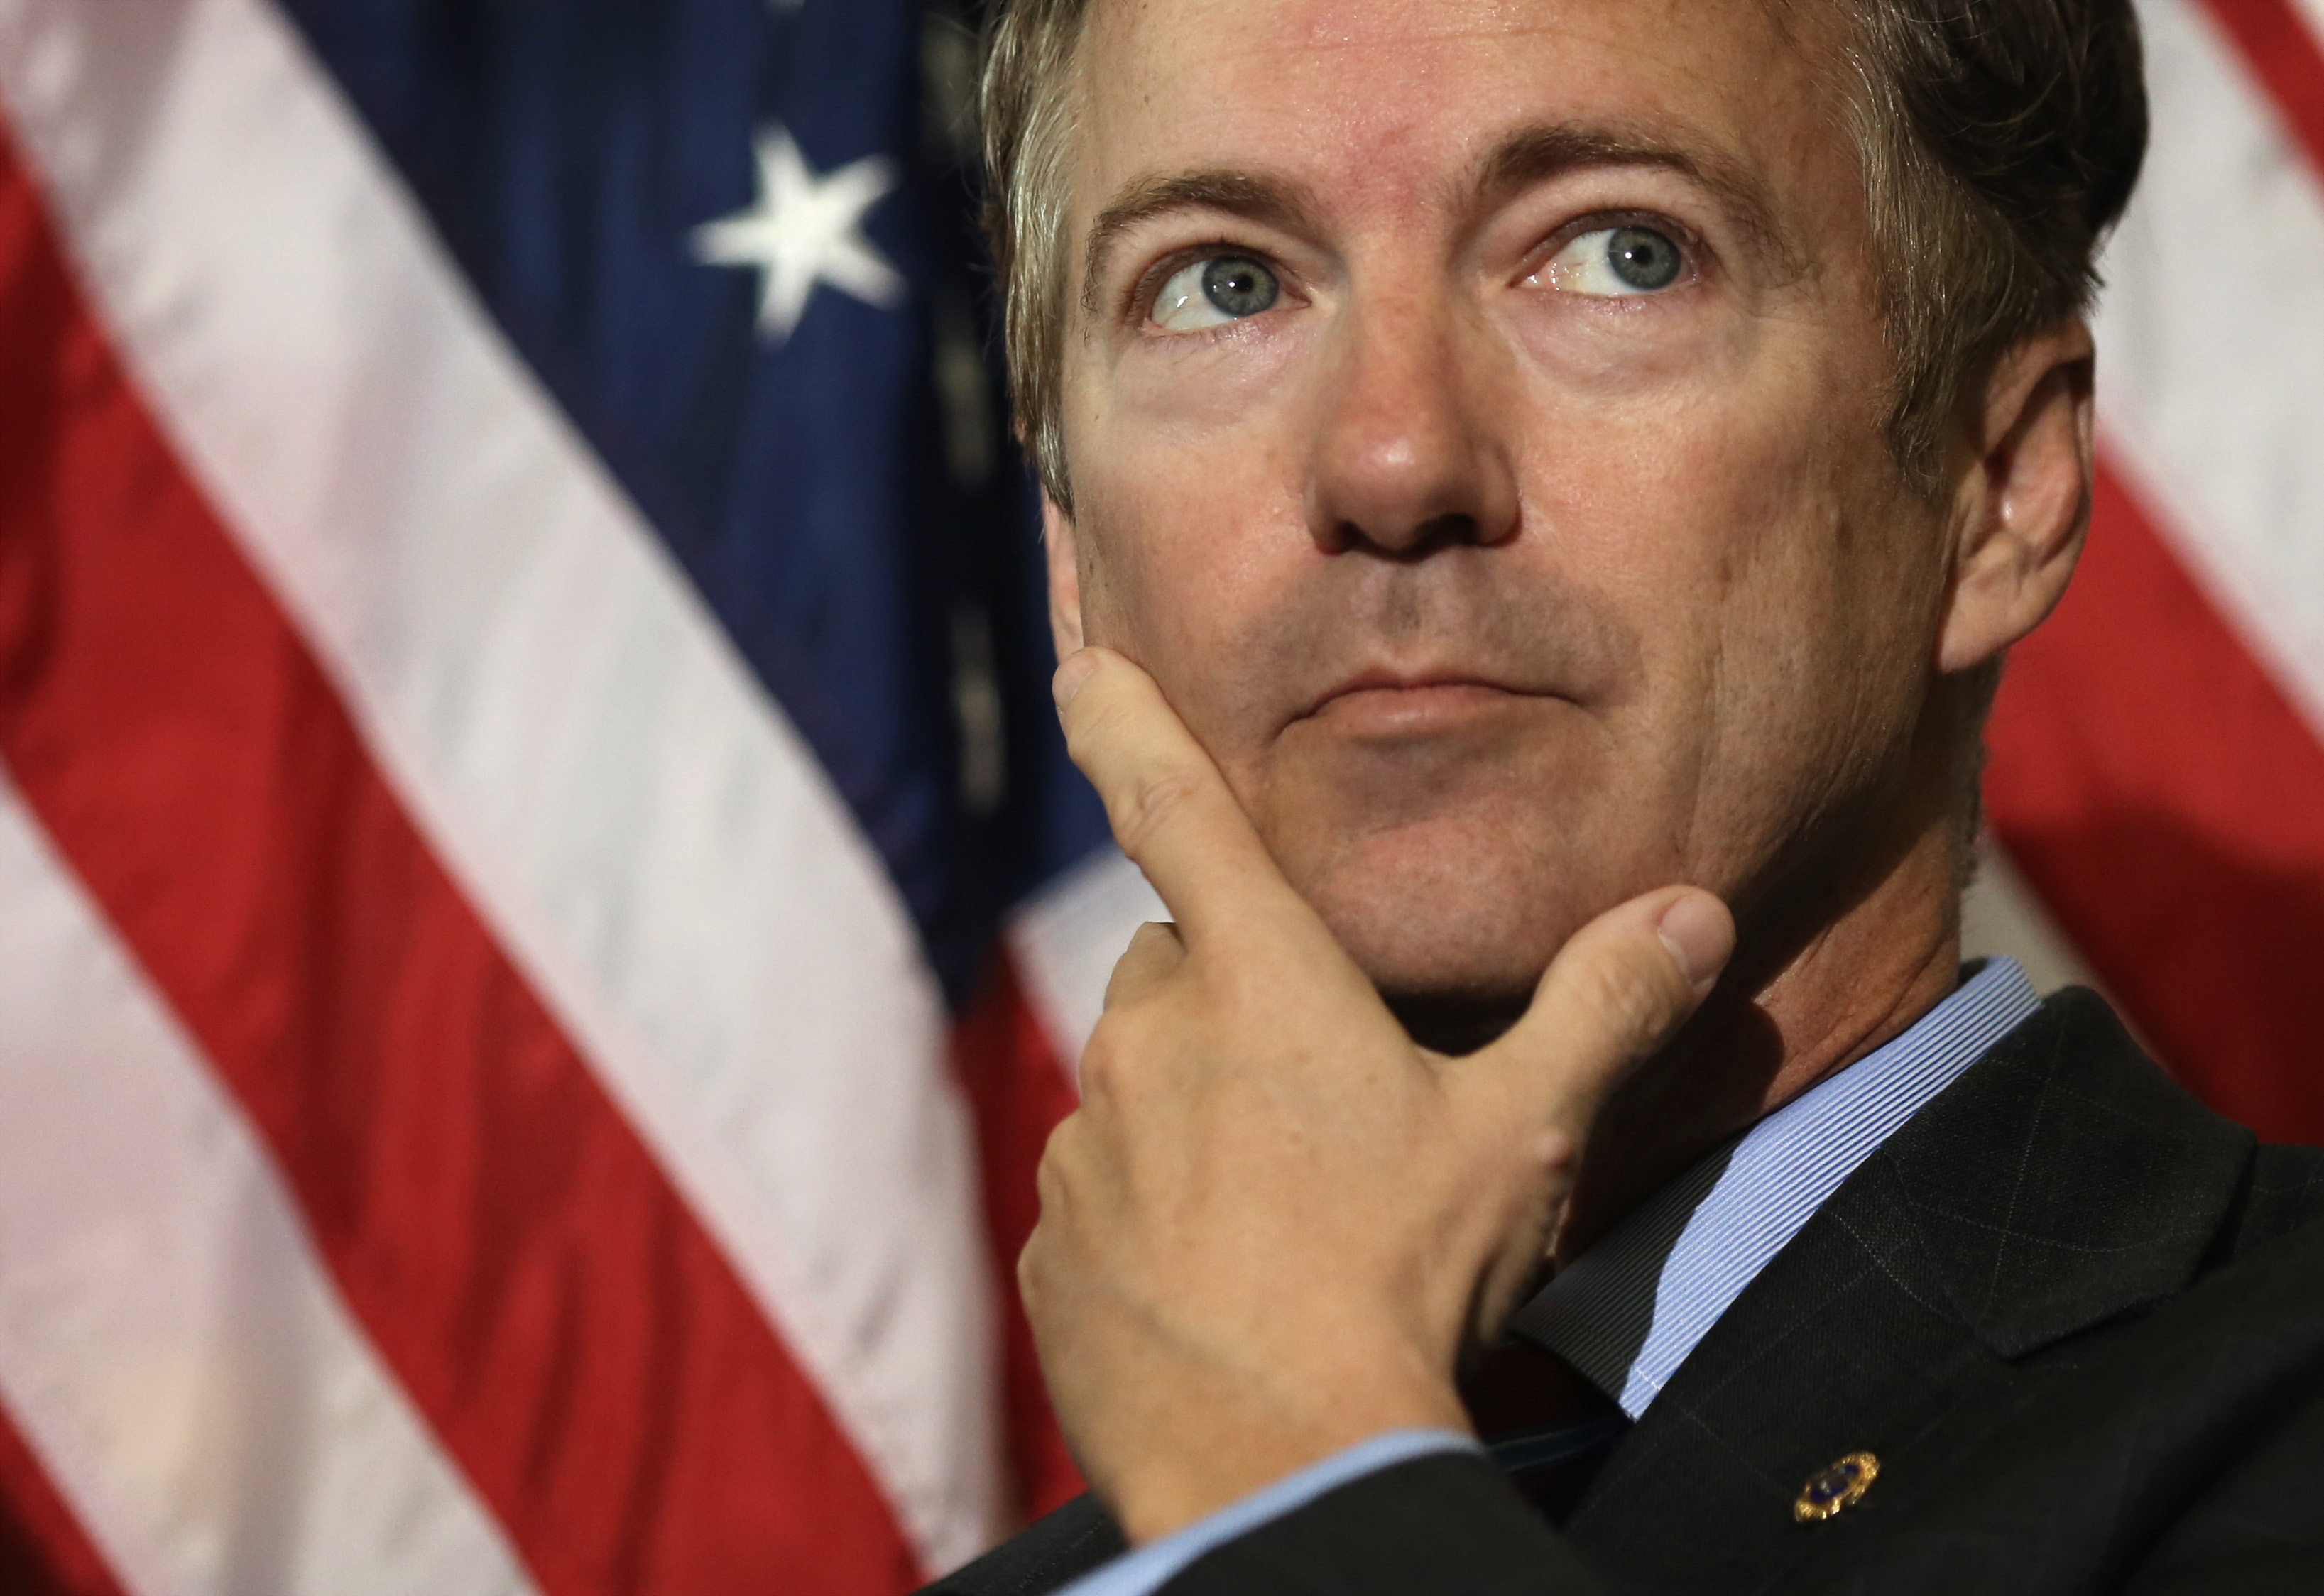 Why You Should Not Vote For Rand Paul In 2016